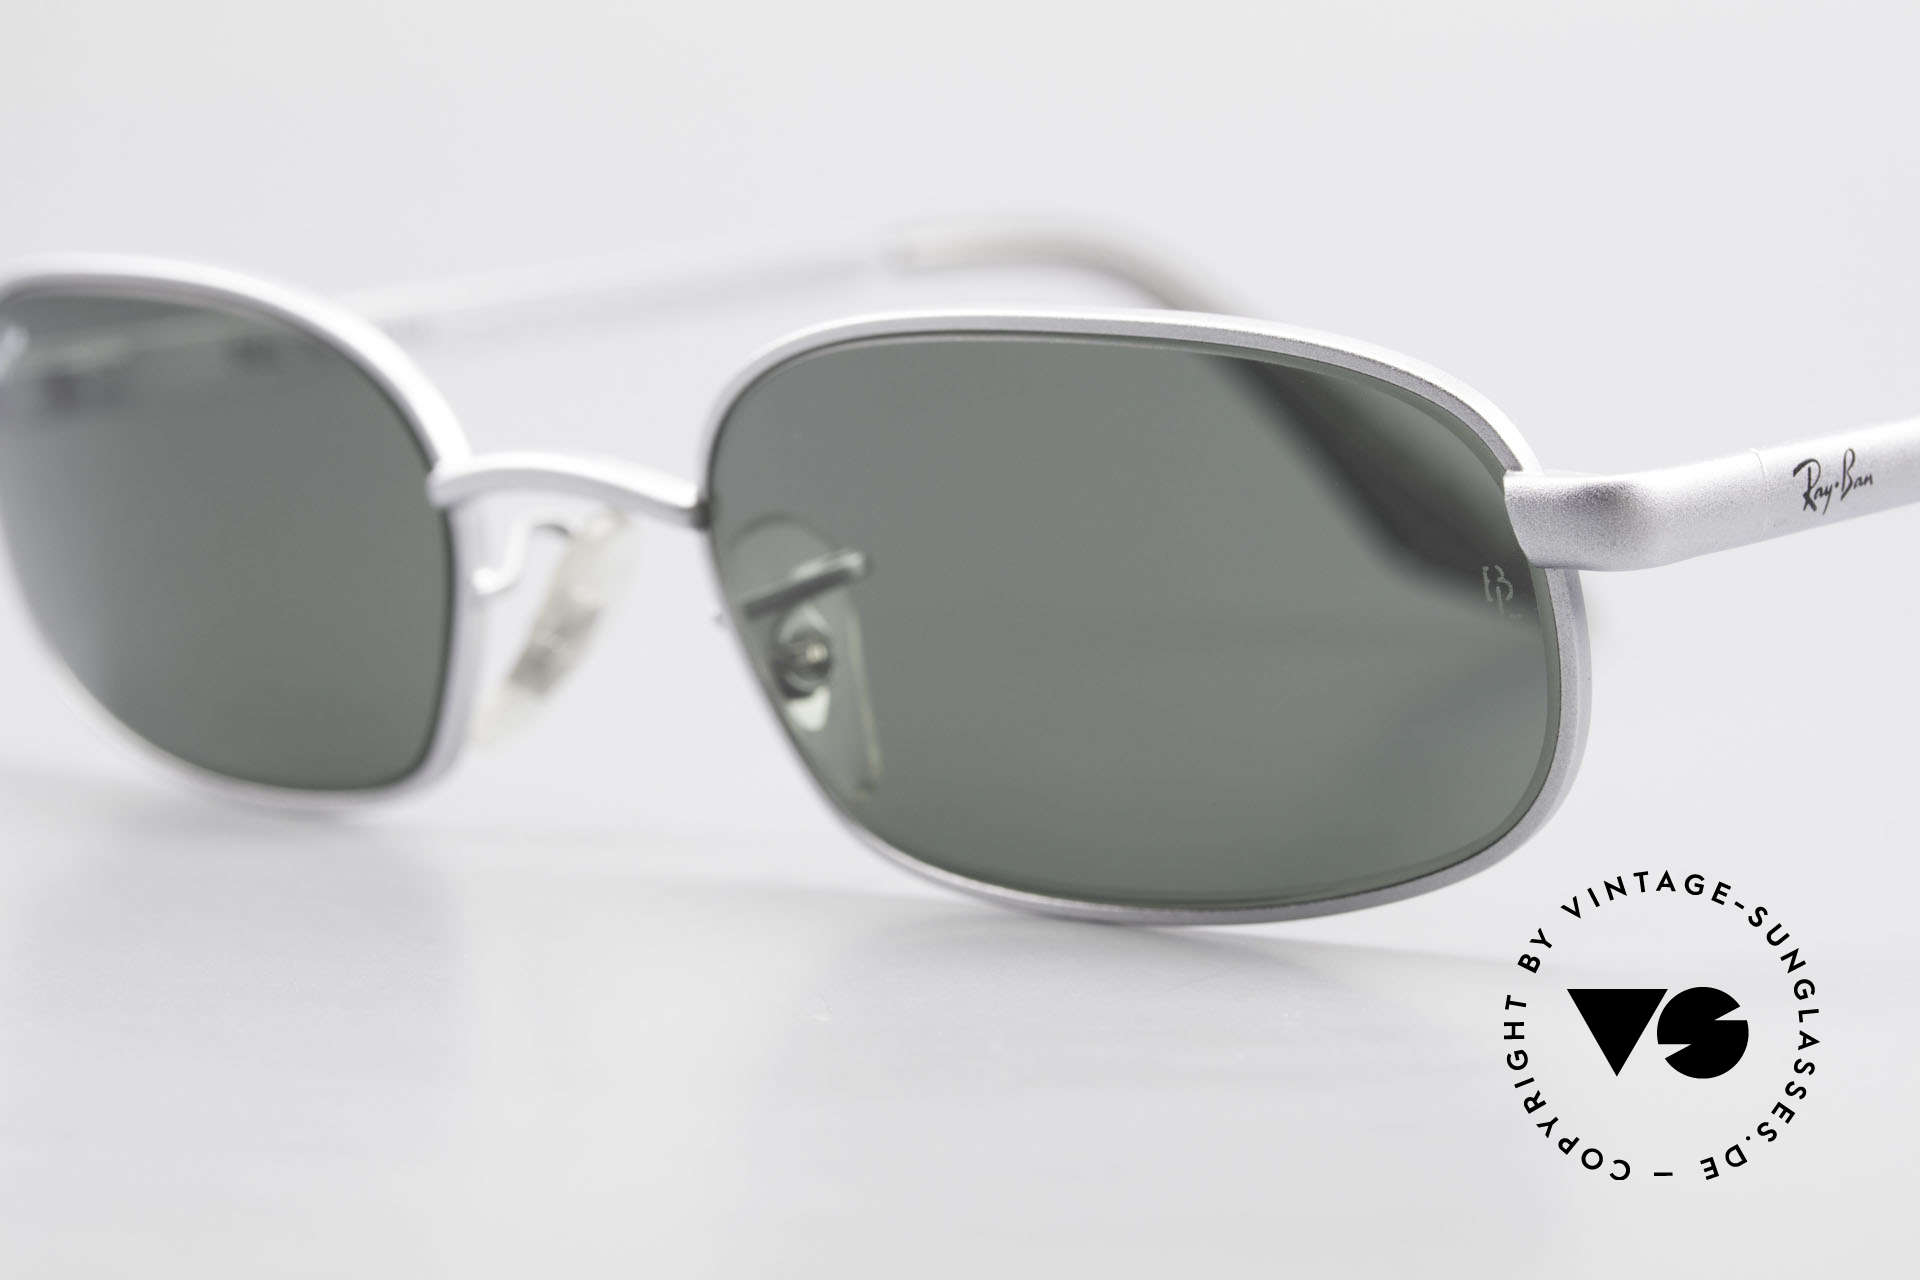 Ray Ban Sidestreet Sidewalk Rectangle Ray Ban USA Shades, very special shades, since a piece of economic history, Made for Men